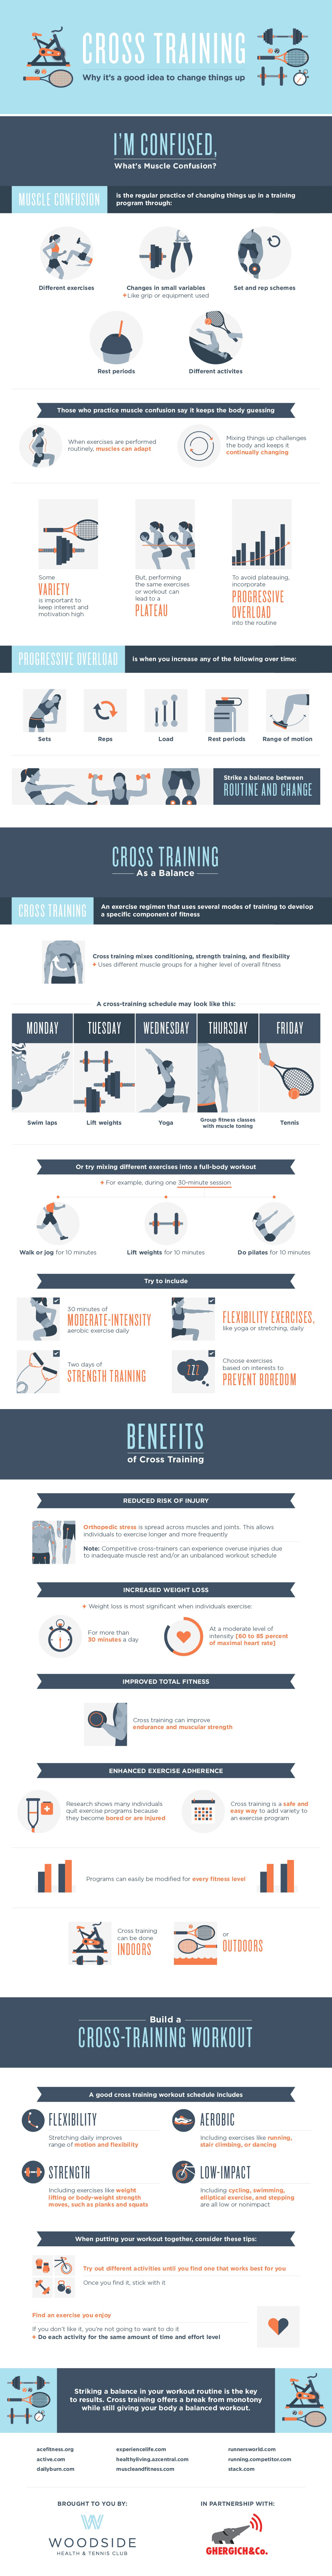 cross-training-infographic